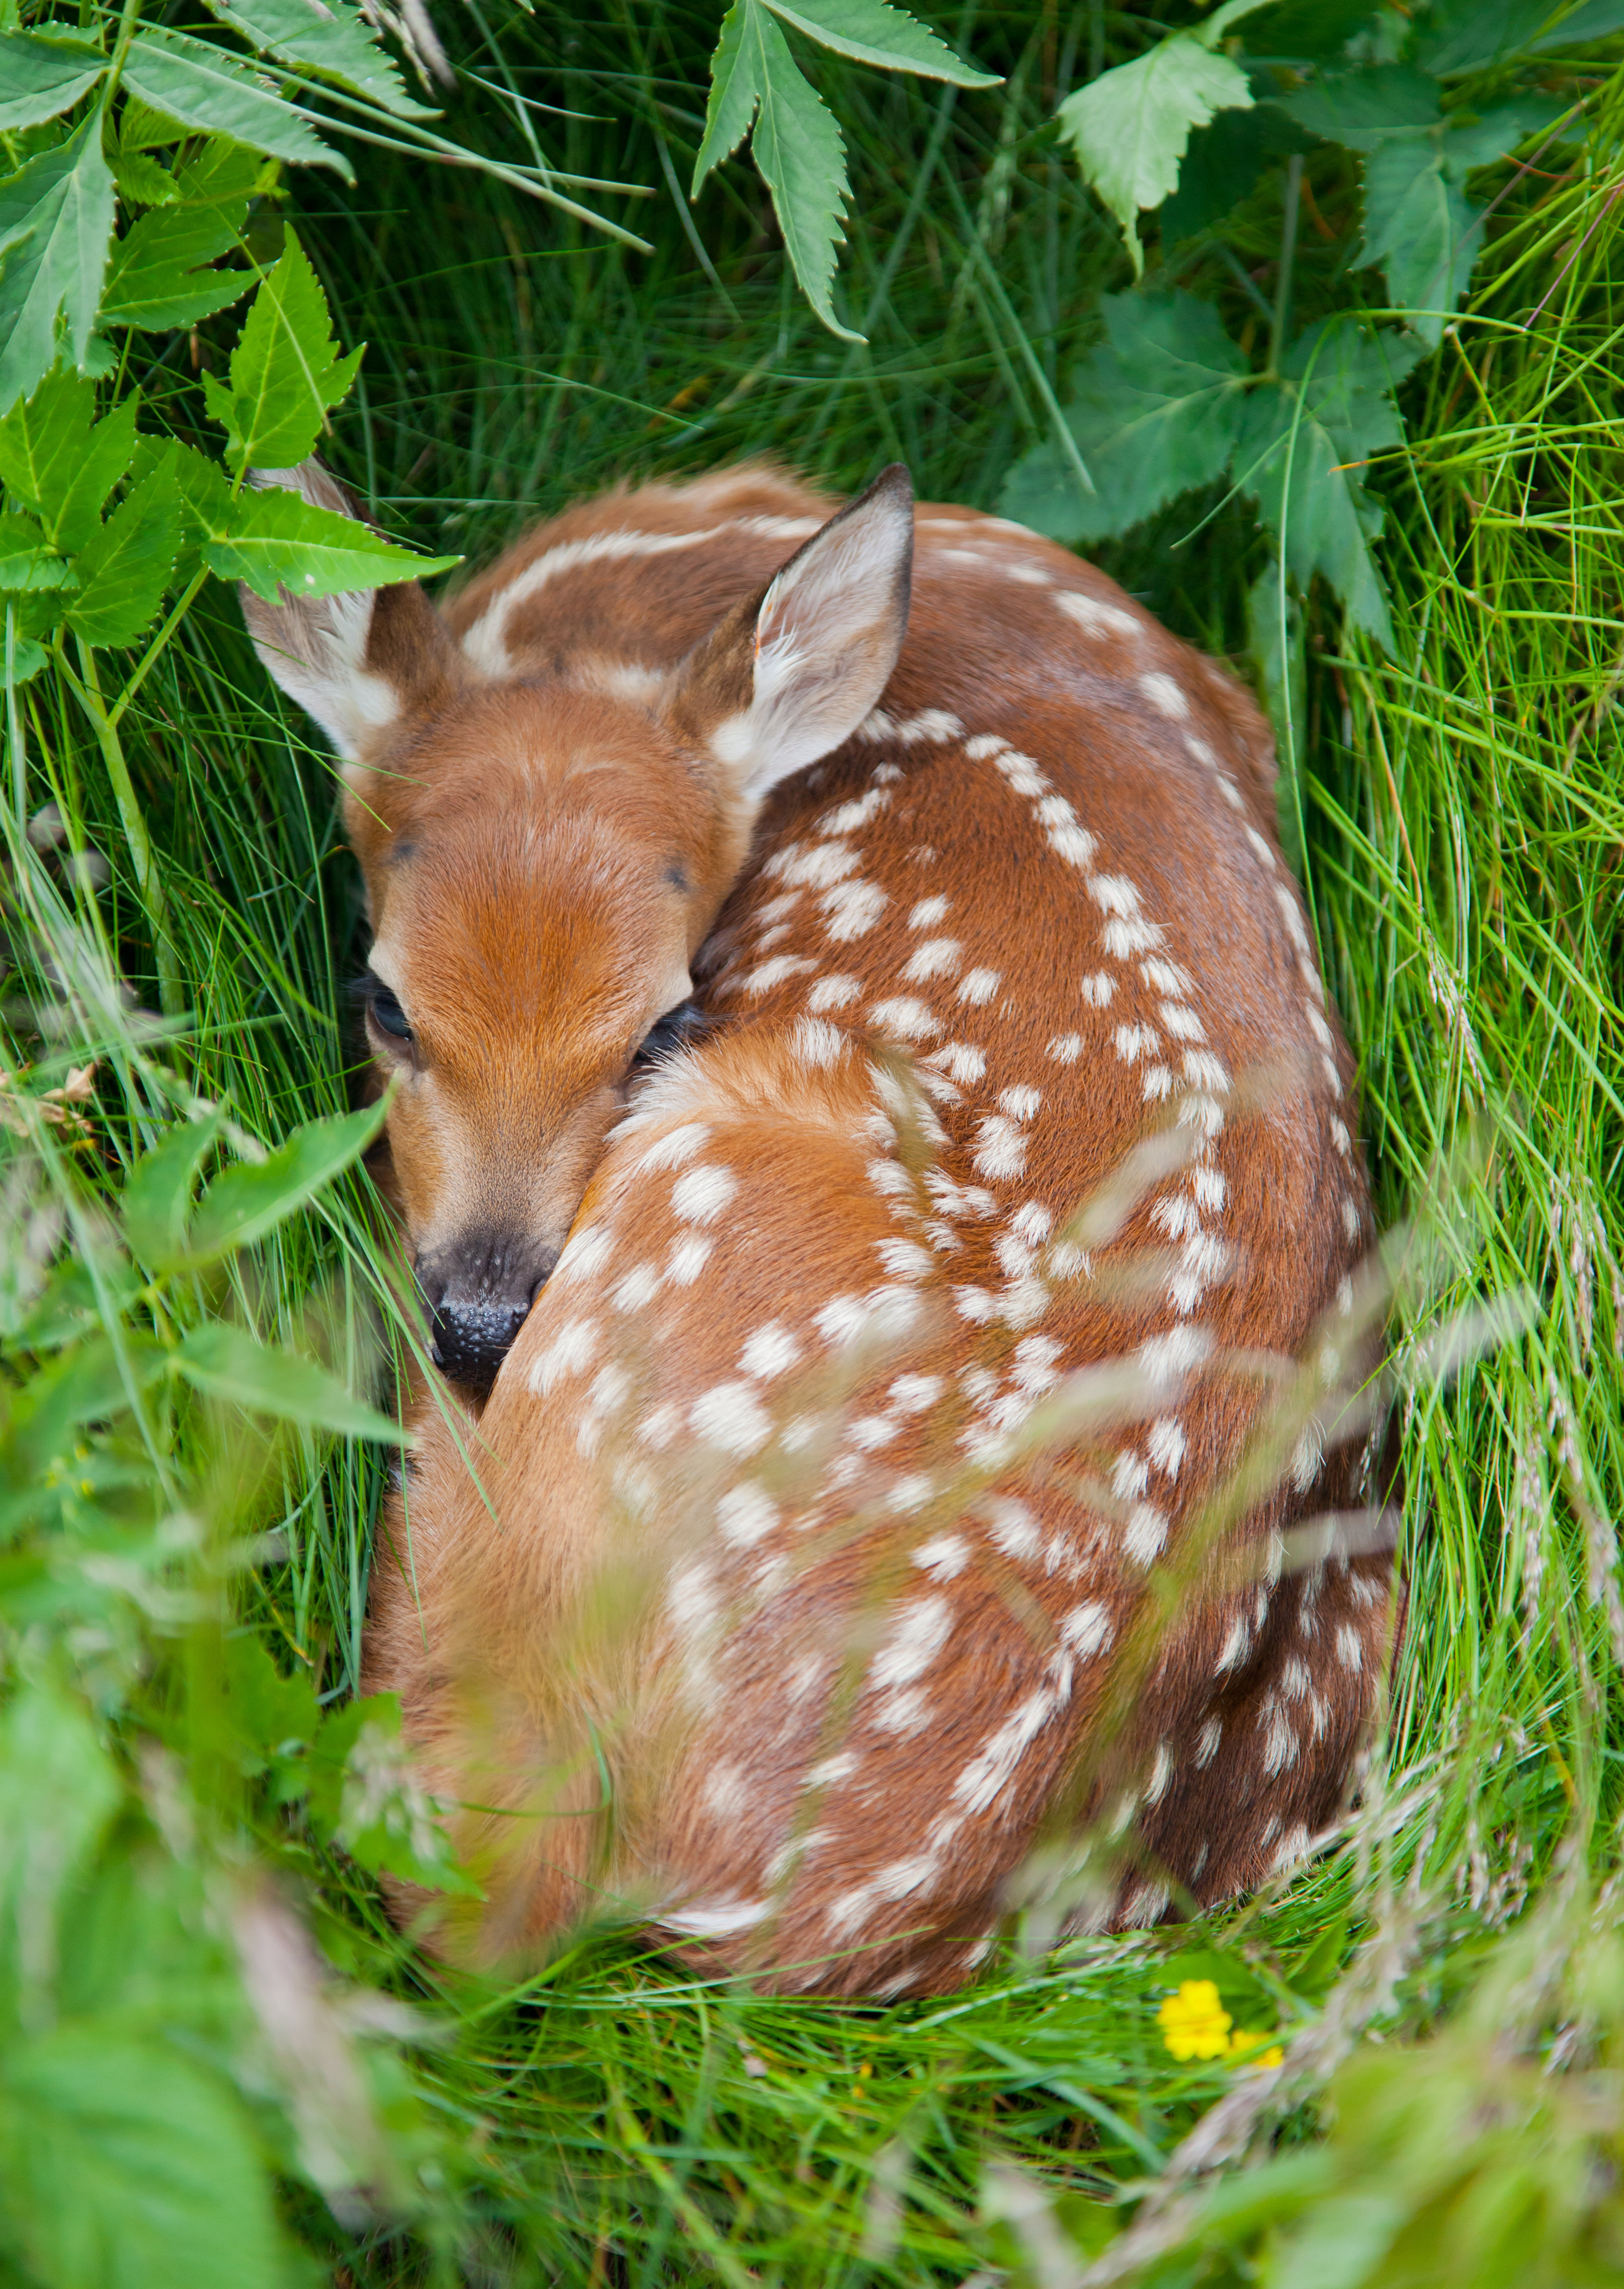 How to Attract Wildlife on Rural Property | Rethink:Rural